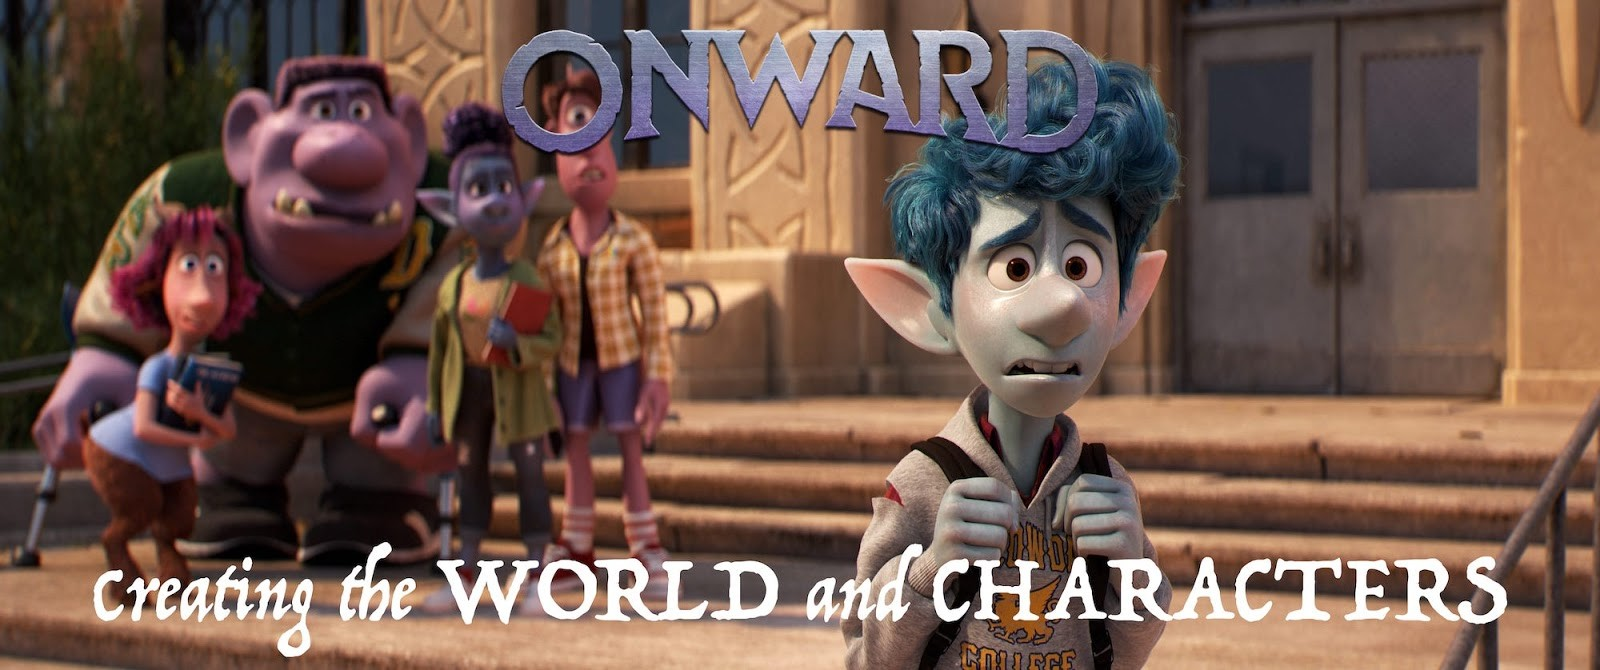 Pixar-Onward-Worlds-and-Characters.jpg